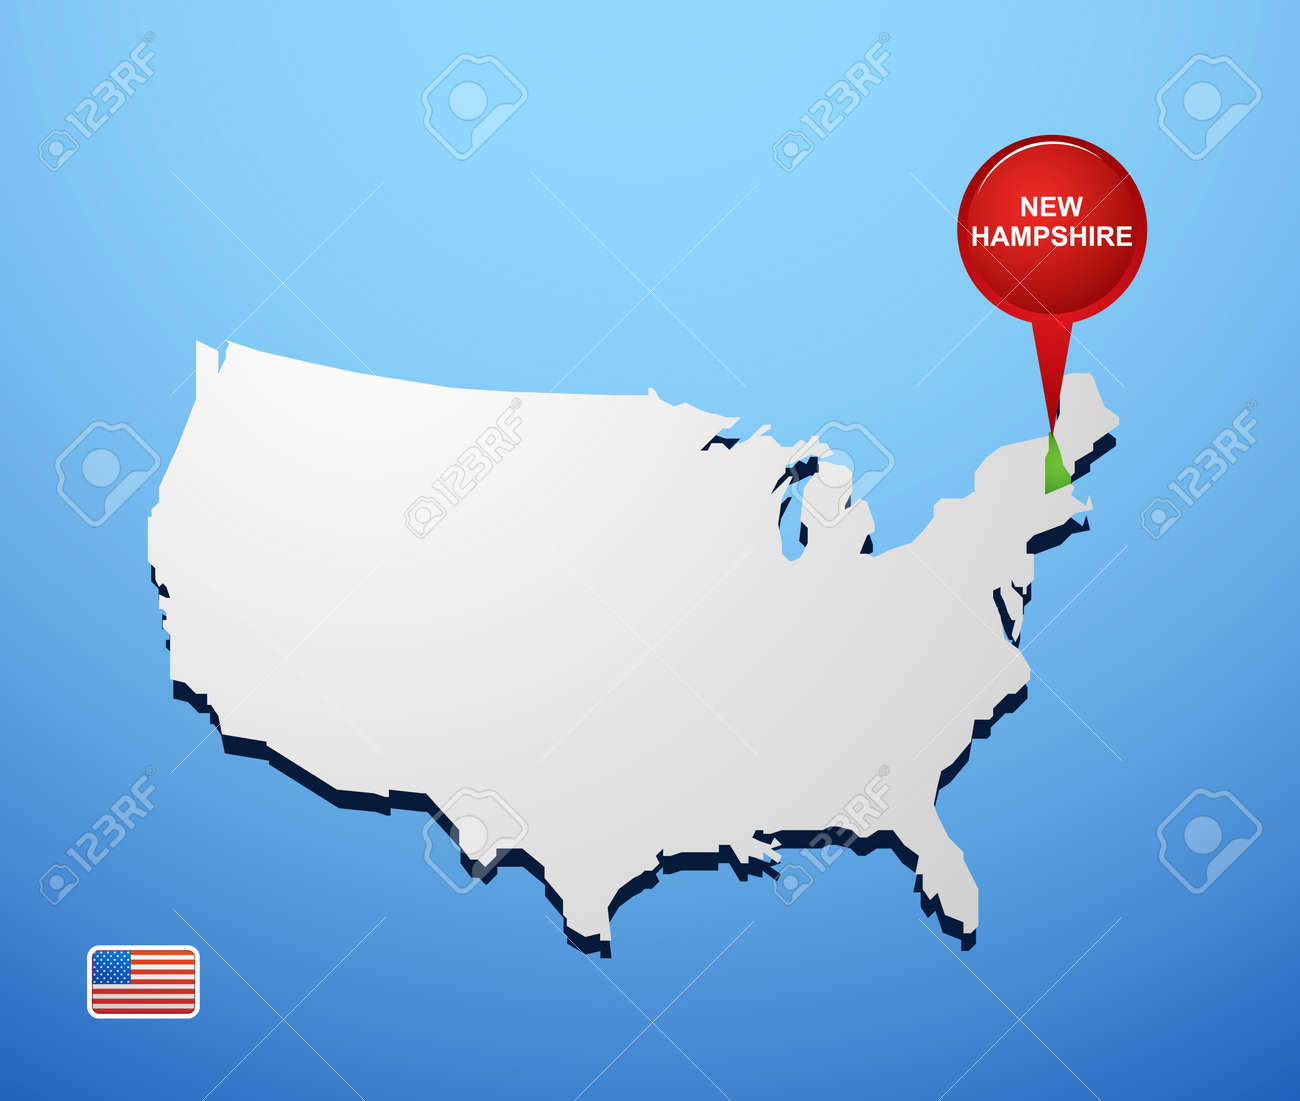 New Hampshire On Usa Map Royalty Free Cliparts Vectors And Stock